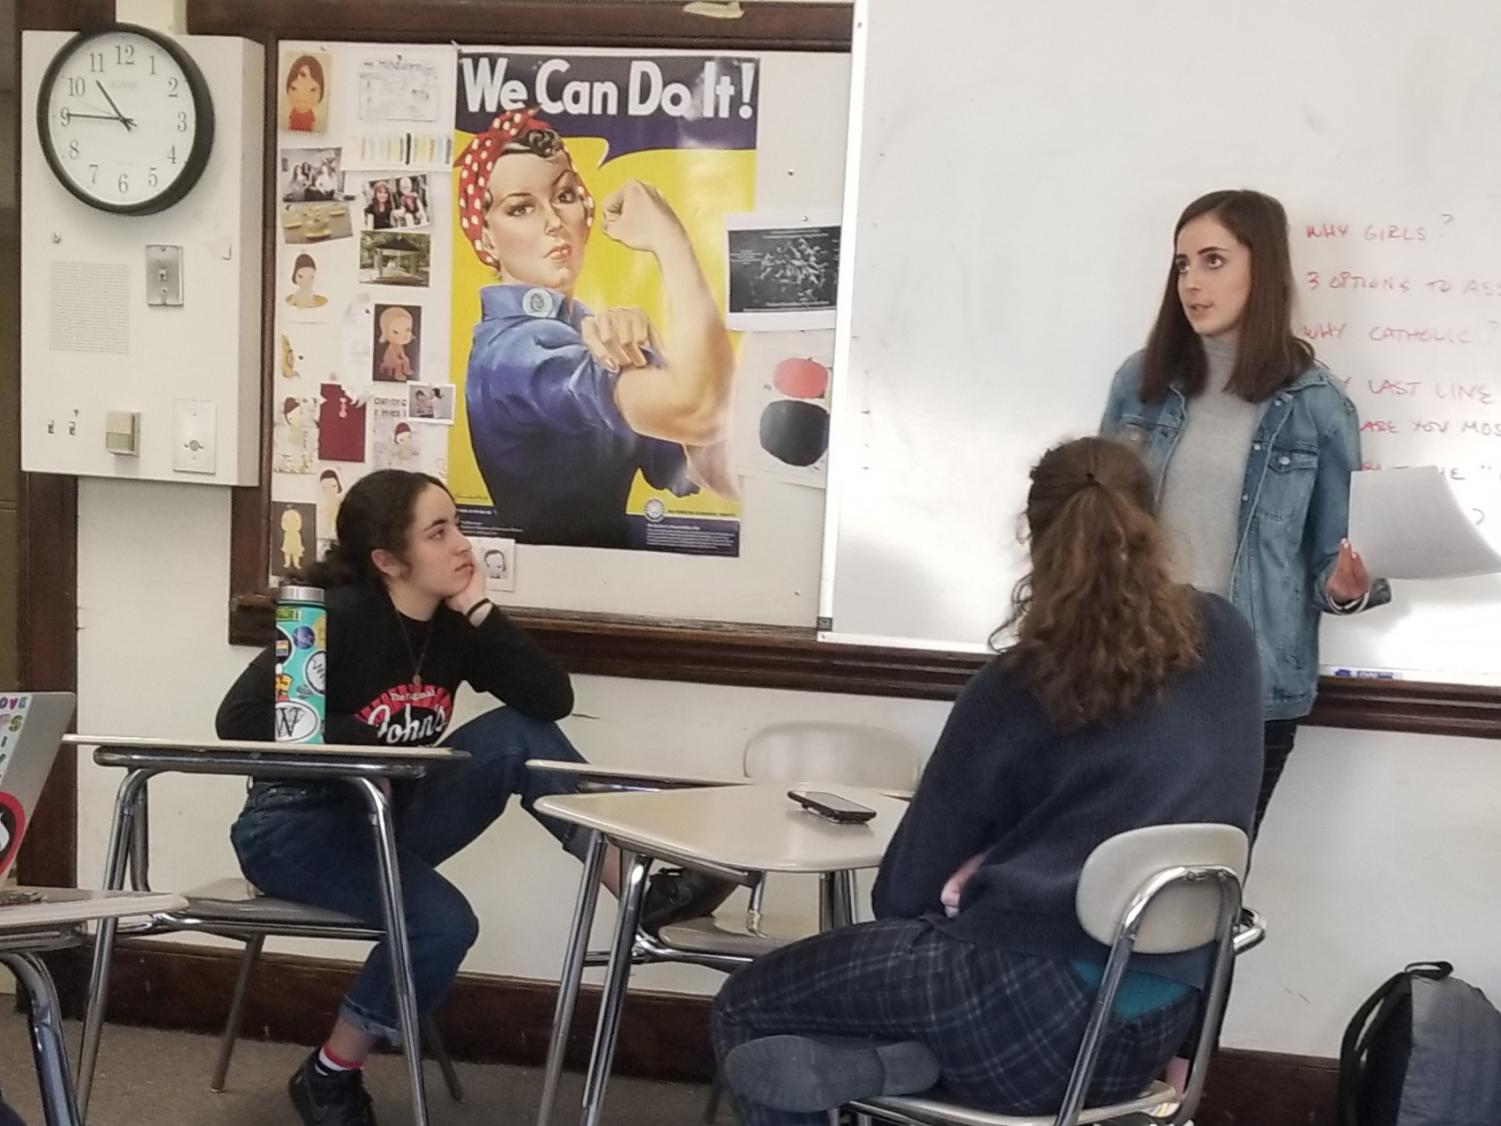 Club members engage in difficult conversations during meetings.